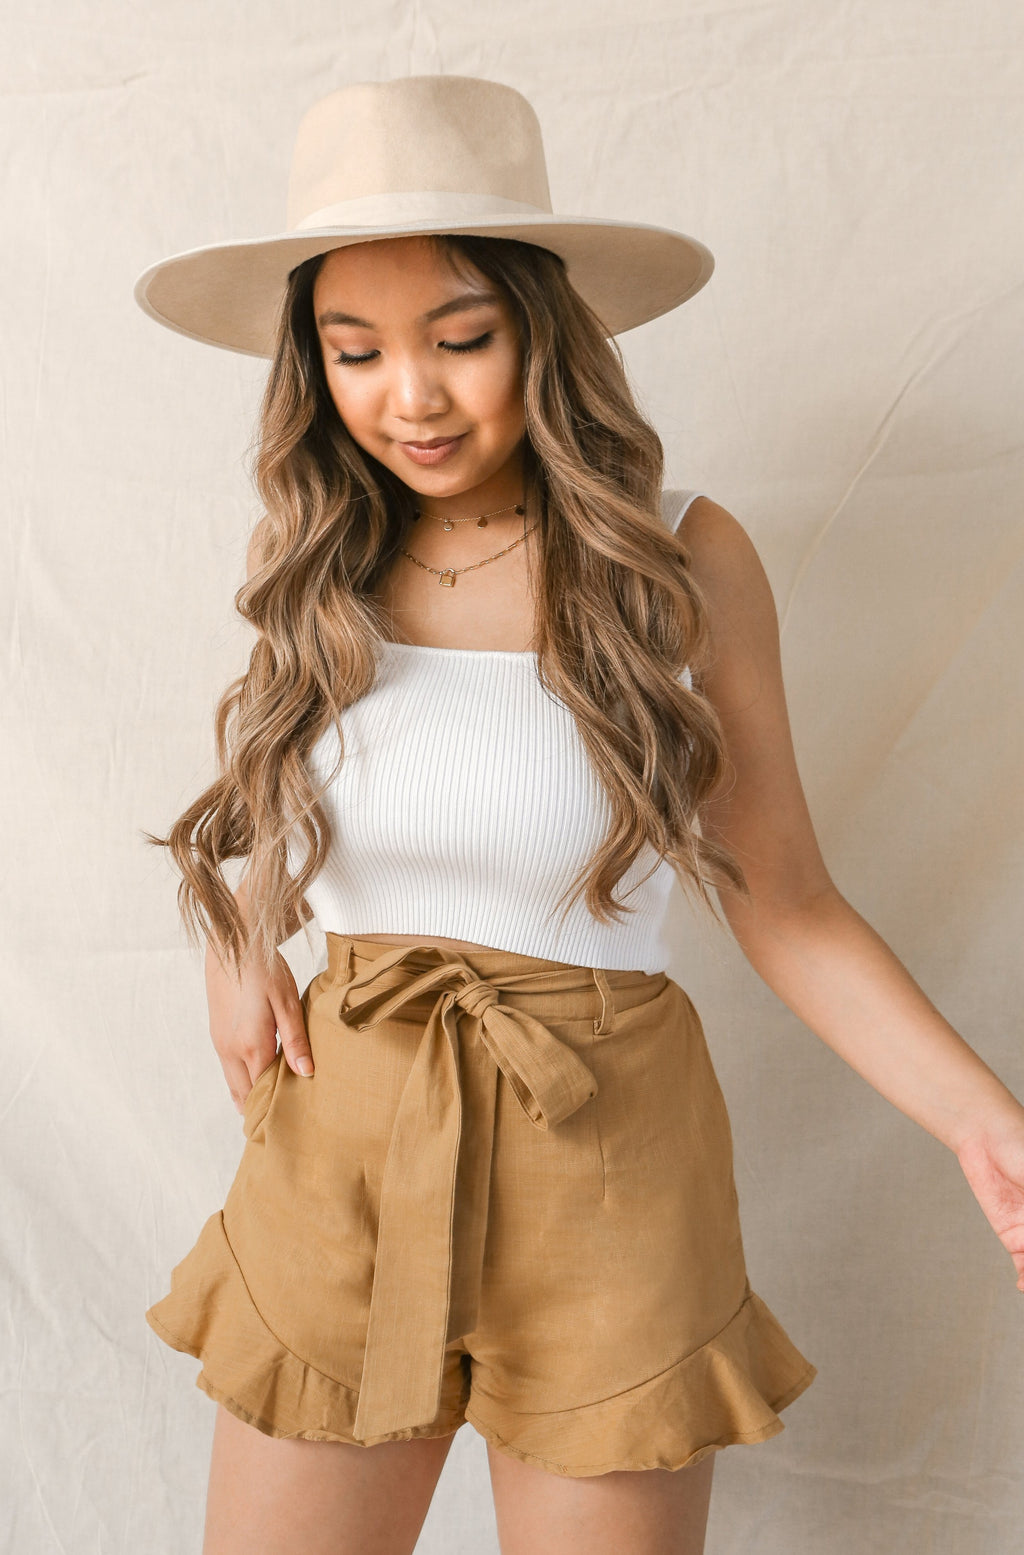 wild rina wildrina.com womens boutqiue boho style mustard yellow tan brown ruffle short belt tie cute girly bottoms shorts